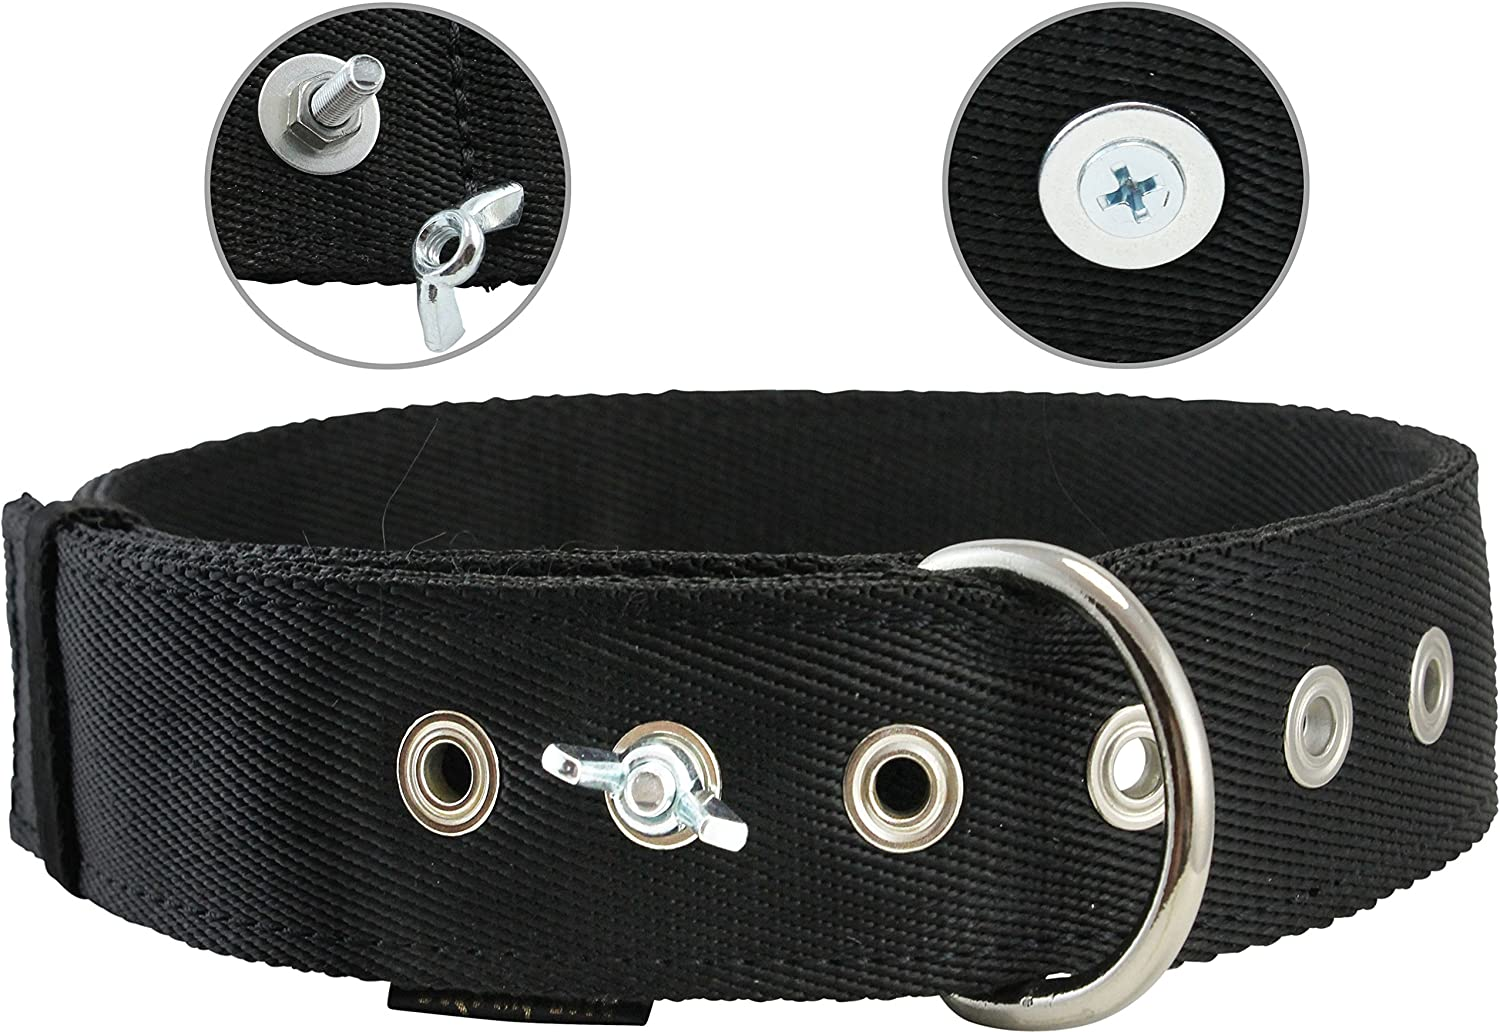 Bolted Heavy Duty Extra Wide Triple Layer Tie Out Dog Collar for Medium to Large Dogs 15 19  Neck, 1.6  Wide (Black)